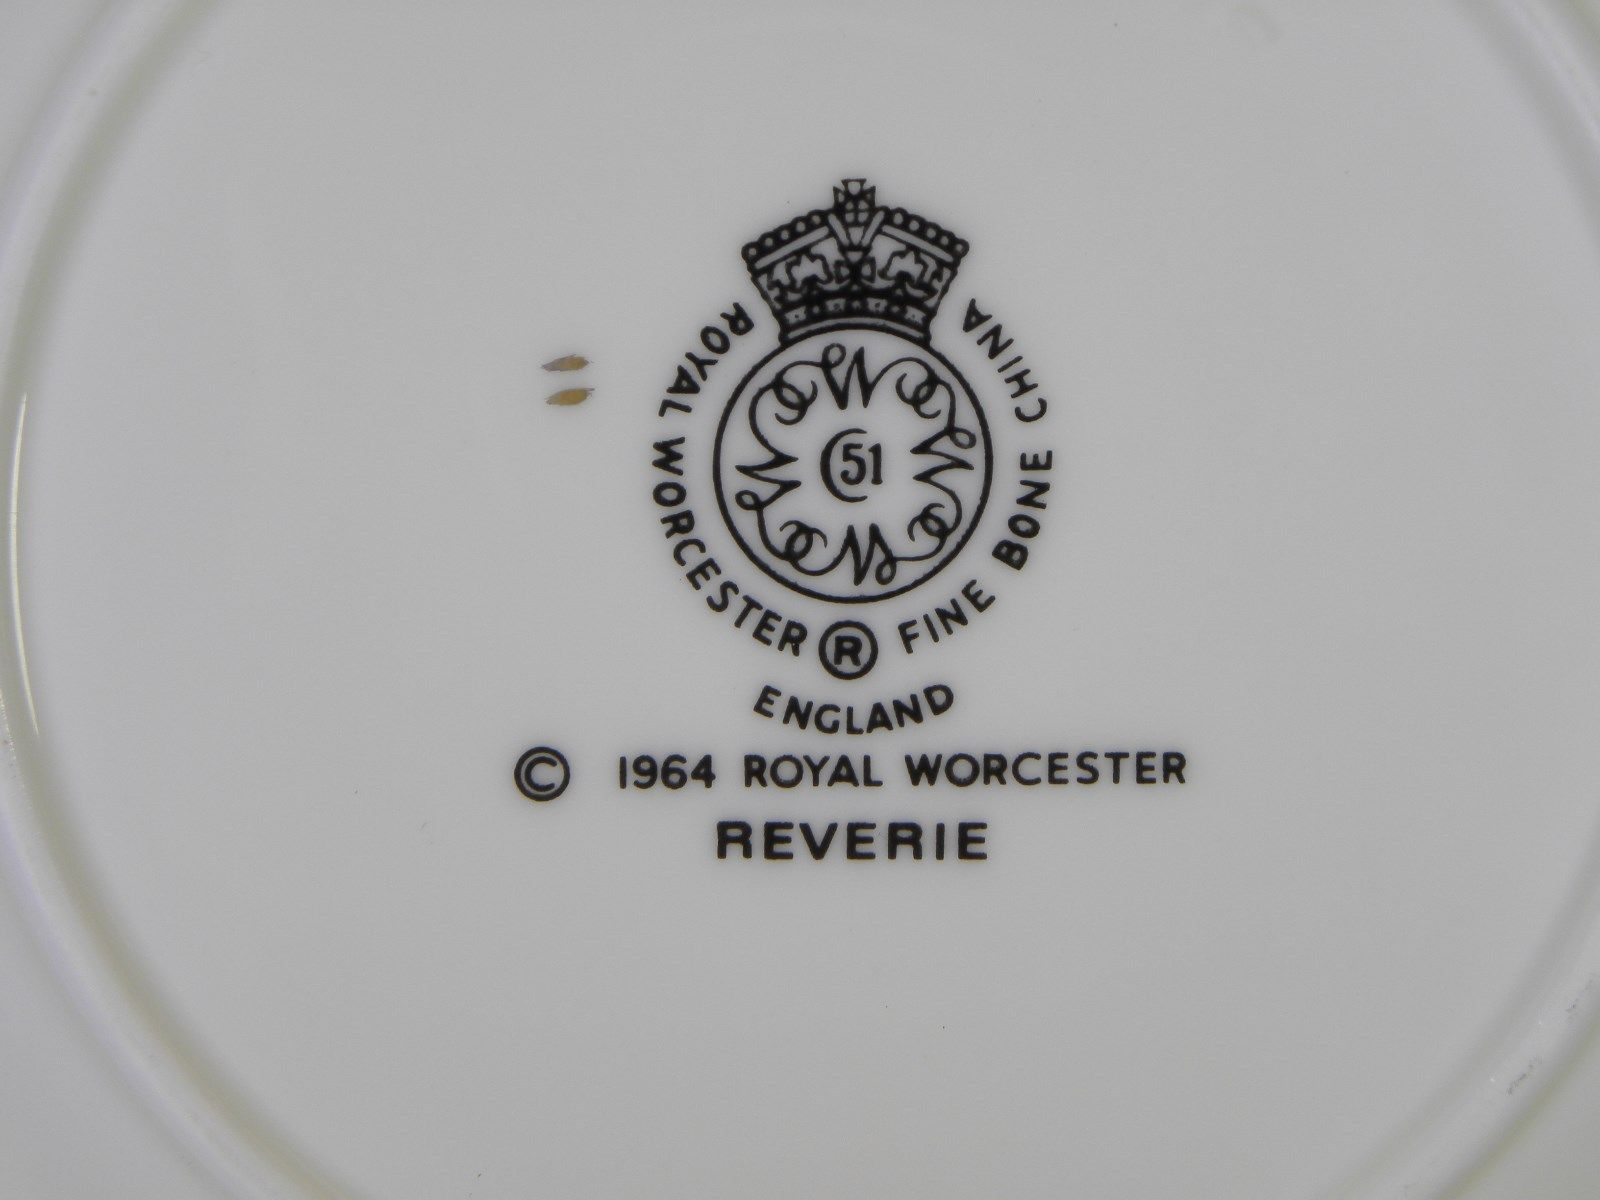 Royal Worcester Reverie 5PC Place Setting image 2